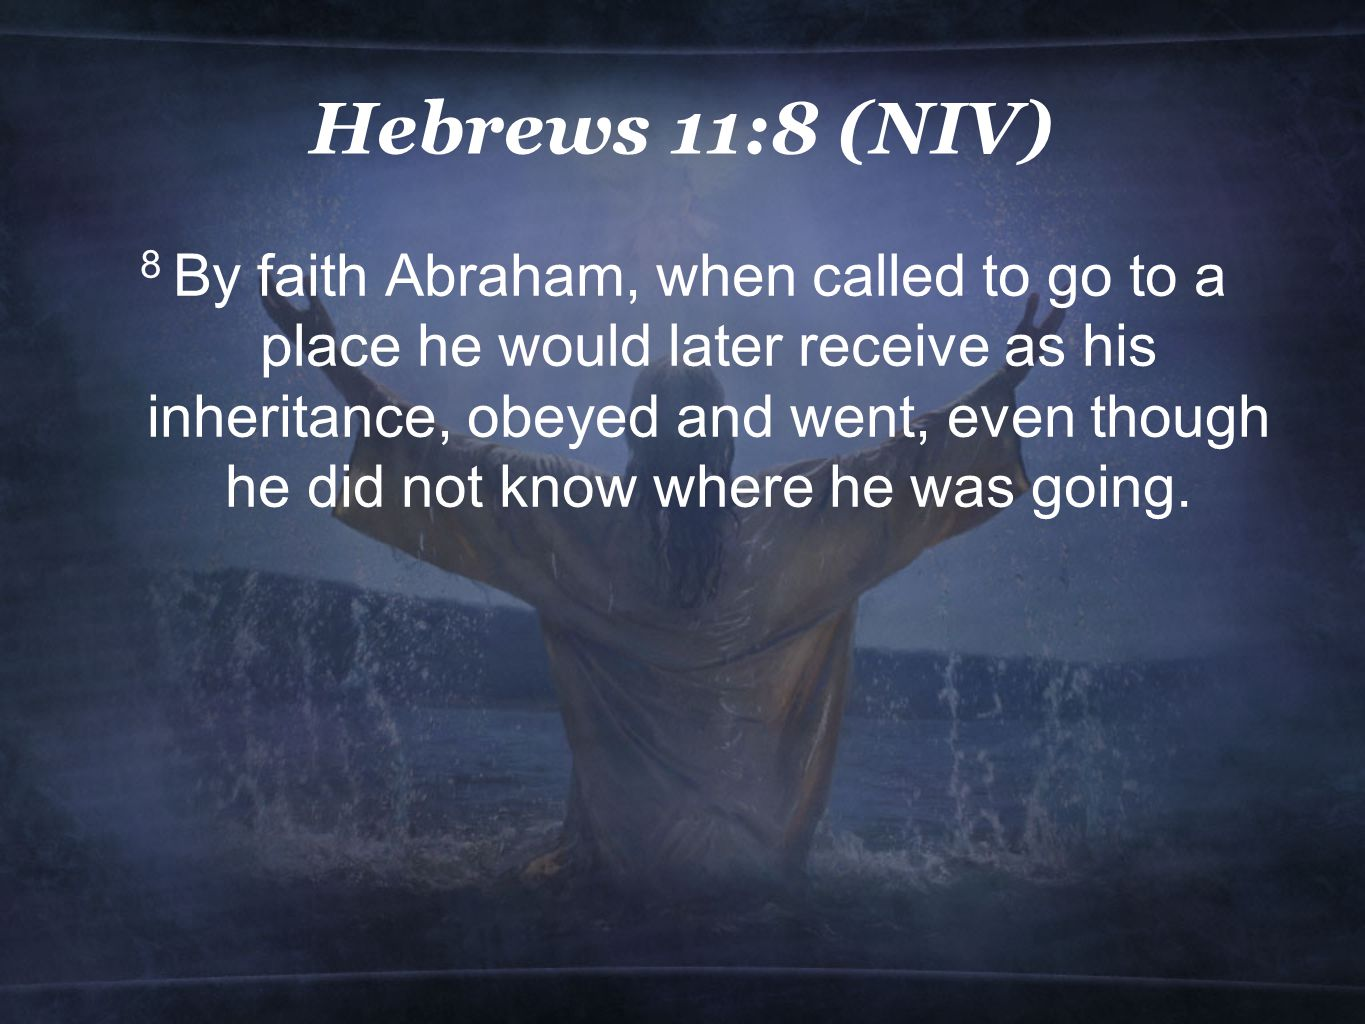 Hebrews 11:8 (NIV) 8 By faith Abraham, when called to go to a place he would later receive as his inheritance, obeyed and went, even though he did not know where he was going.